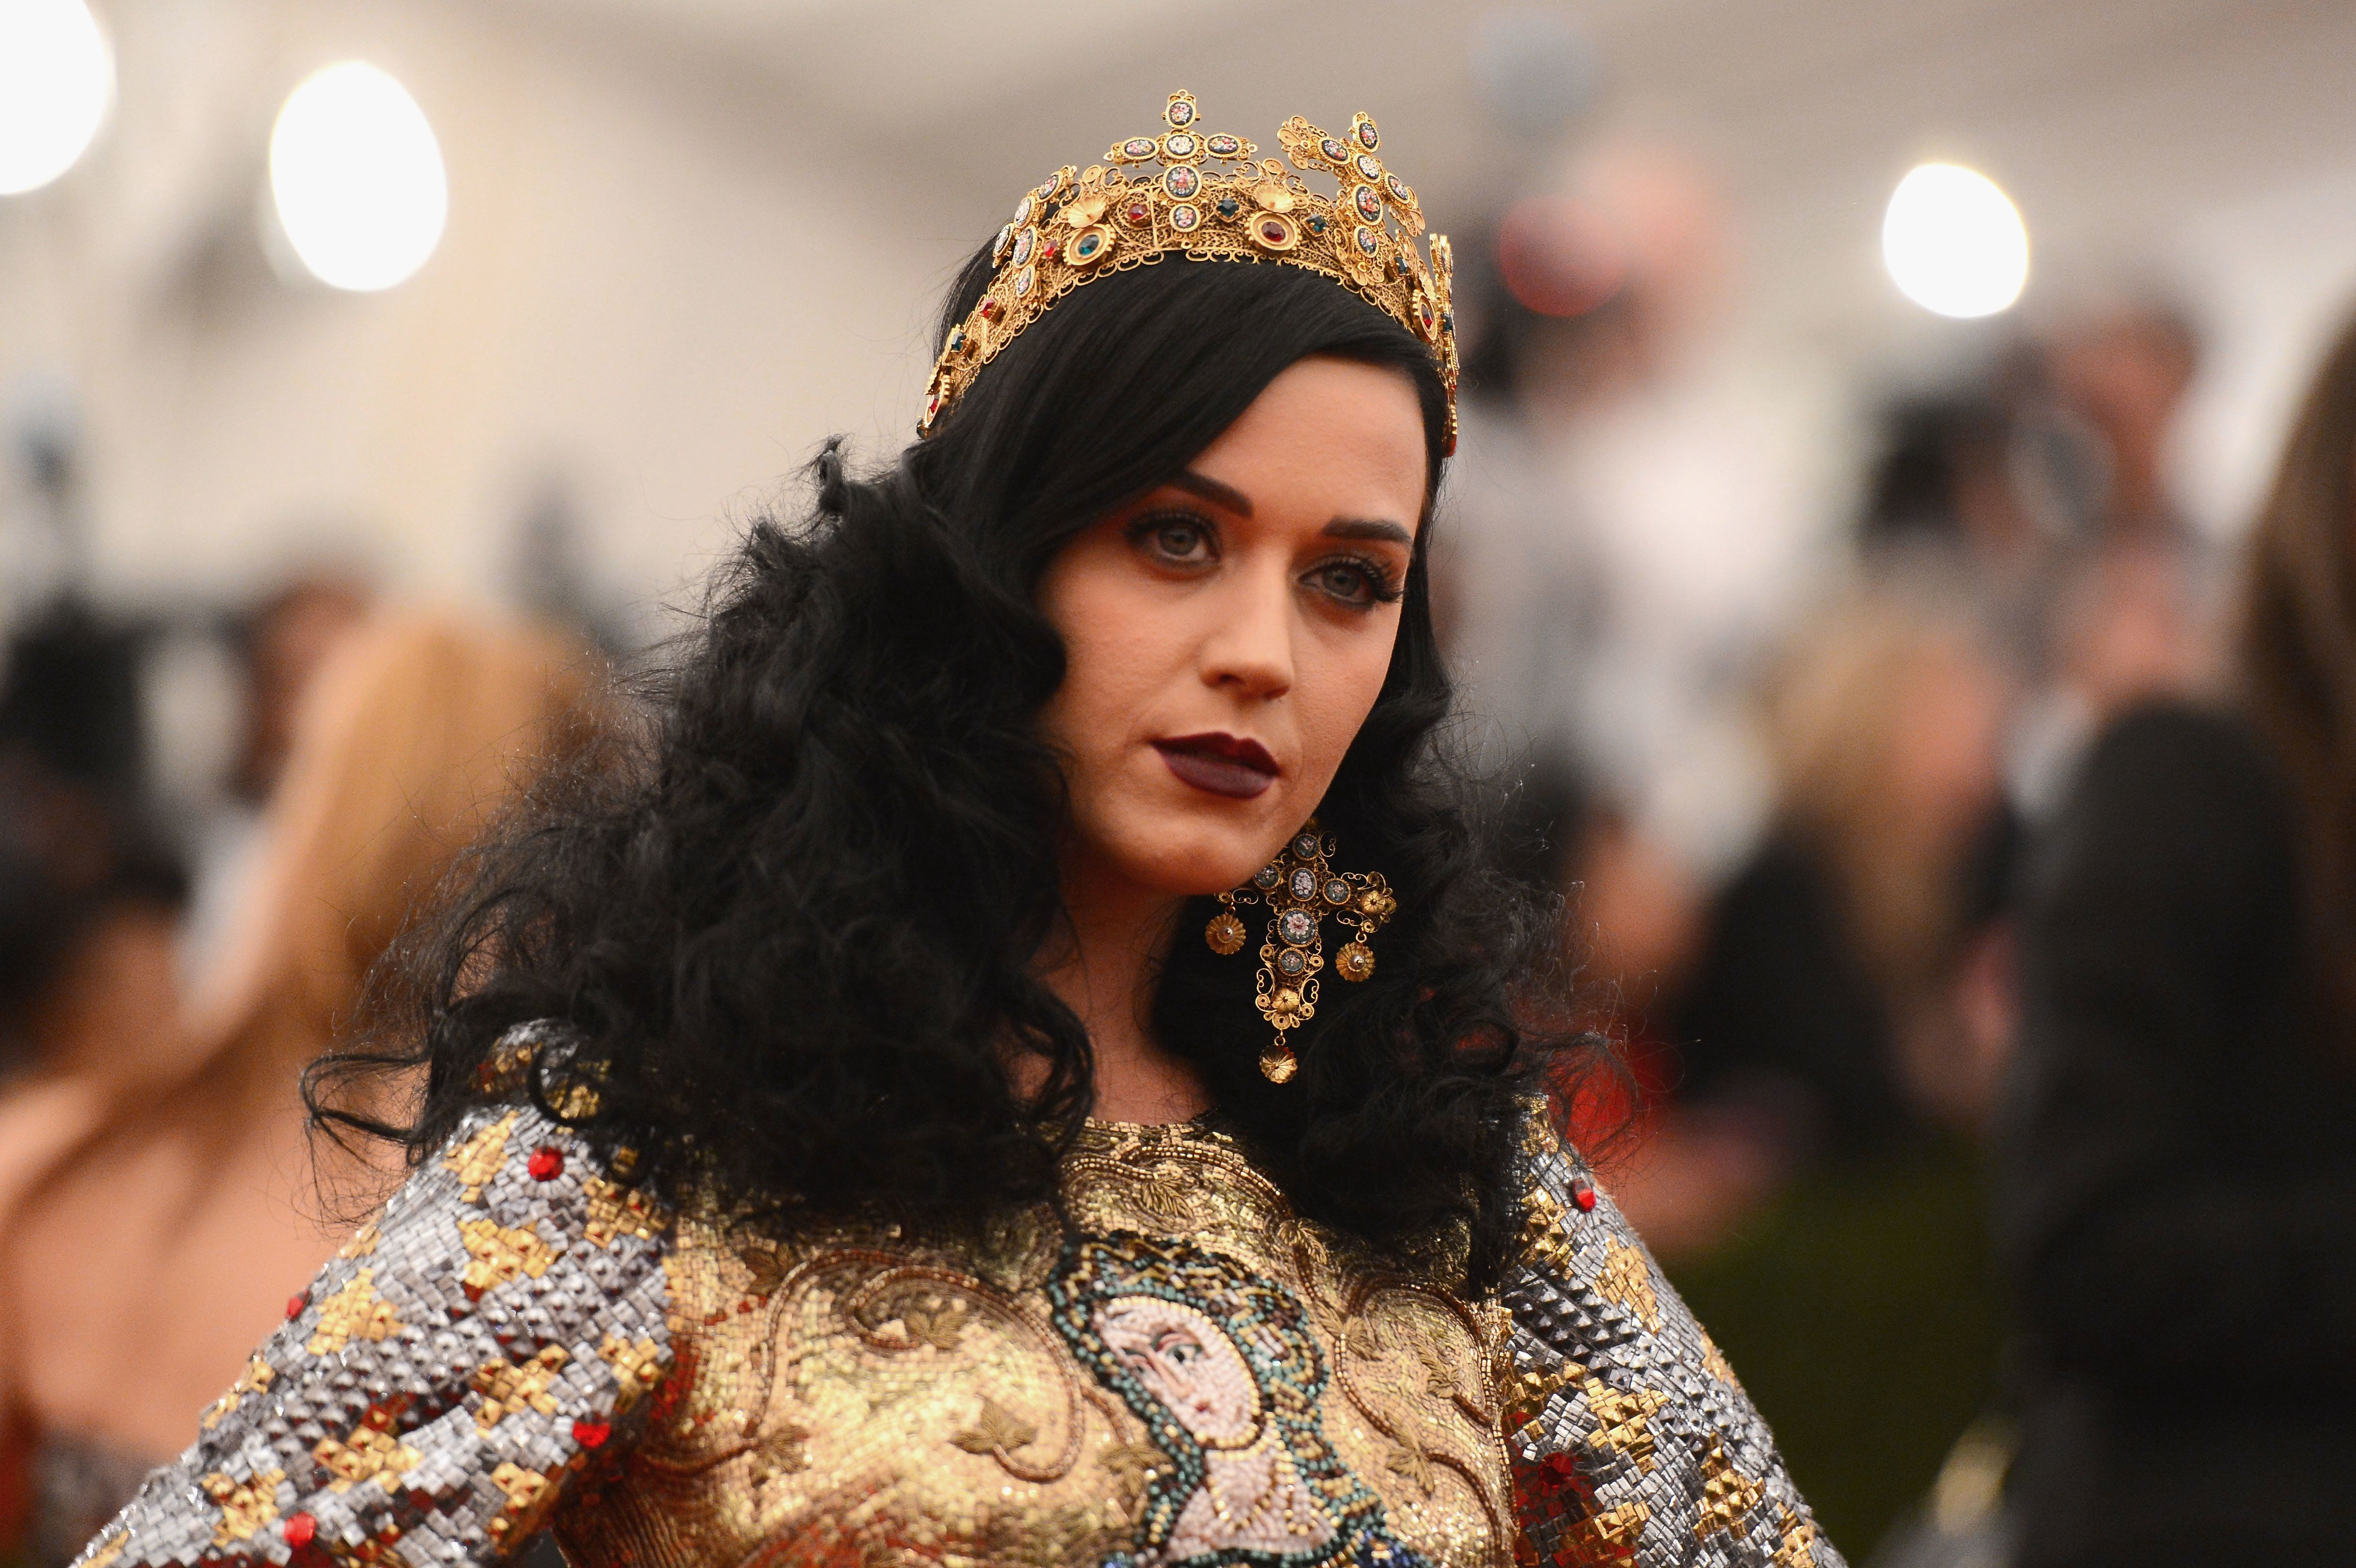 Katy Perry dressed in Dolce & Gabbana at the 2013 Met Gala.